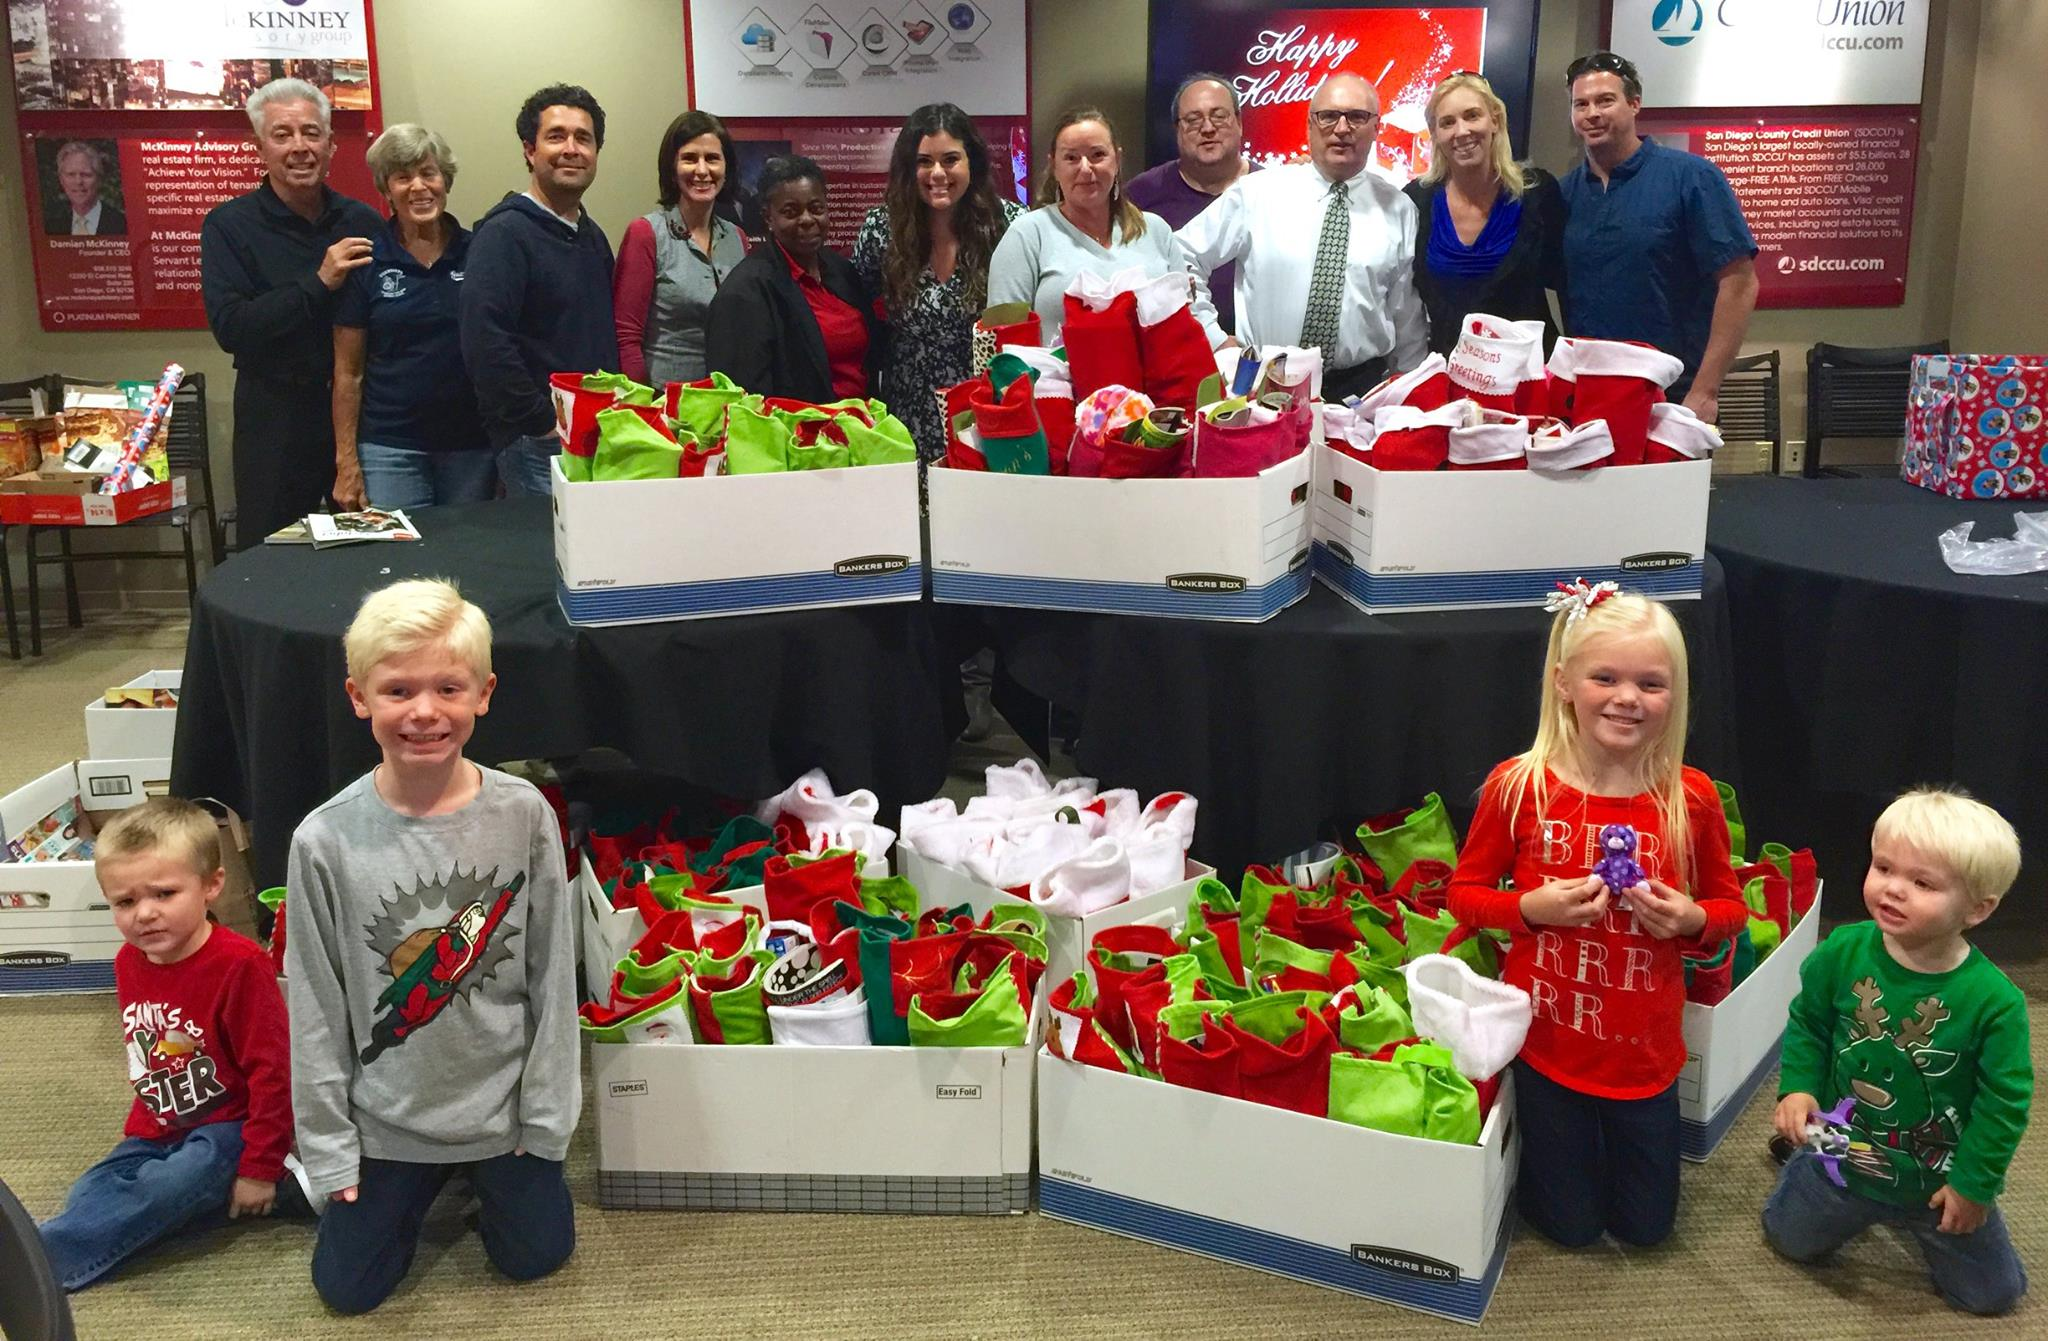 Give back through the Christmas Street Stockings event.